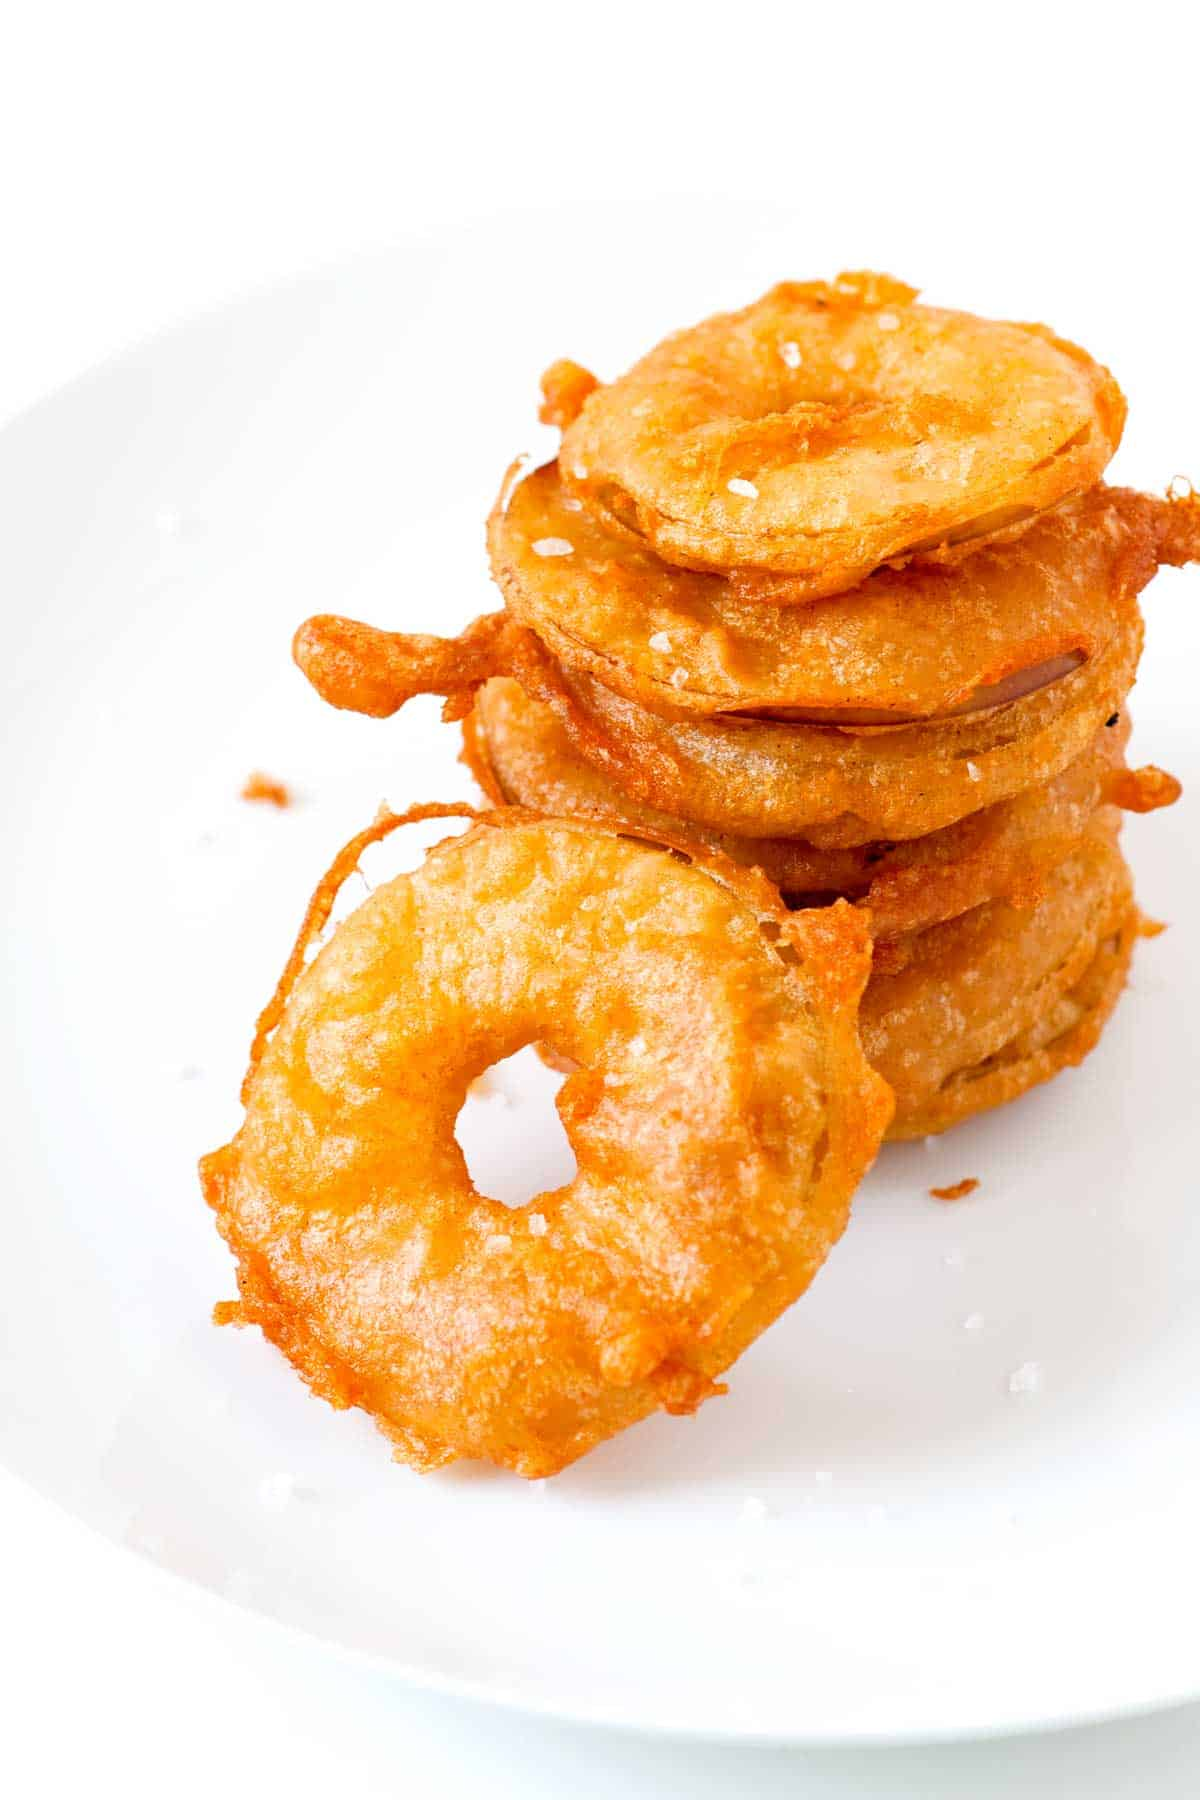 Pristine How To Make Fried Apple Rings Crispy Beer Battered Fried Apples Recipe How To Make Fried Apples Without Butter How To Make Fried Apples Like Cracker Barrel nice food How To Make Fried Apples